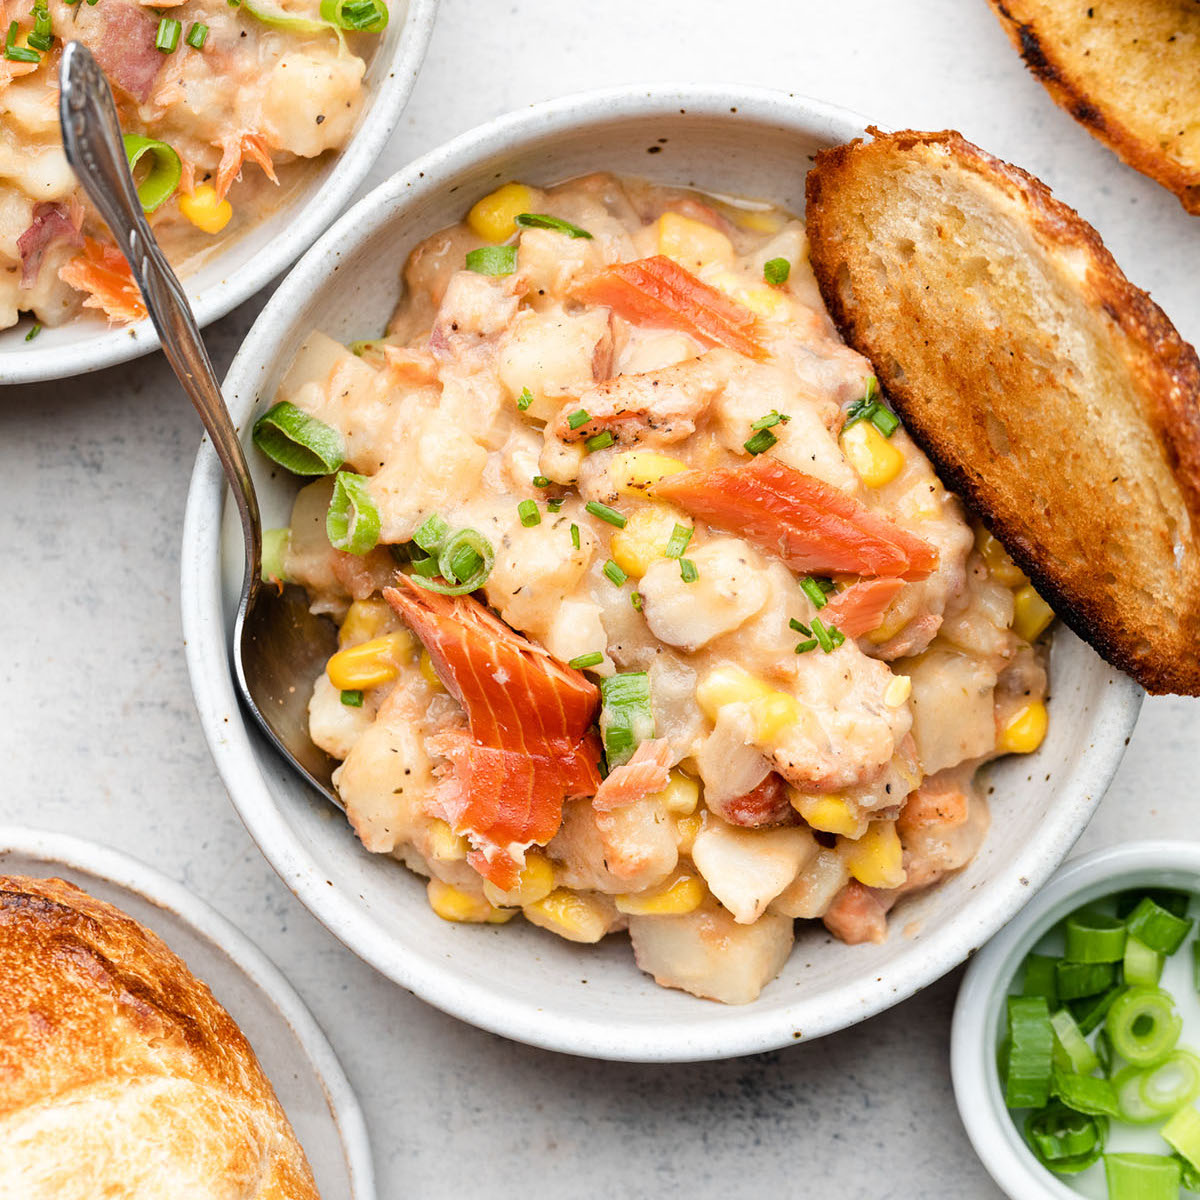 Salmon chowder in a white bowl with a piece of sourdough toast.